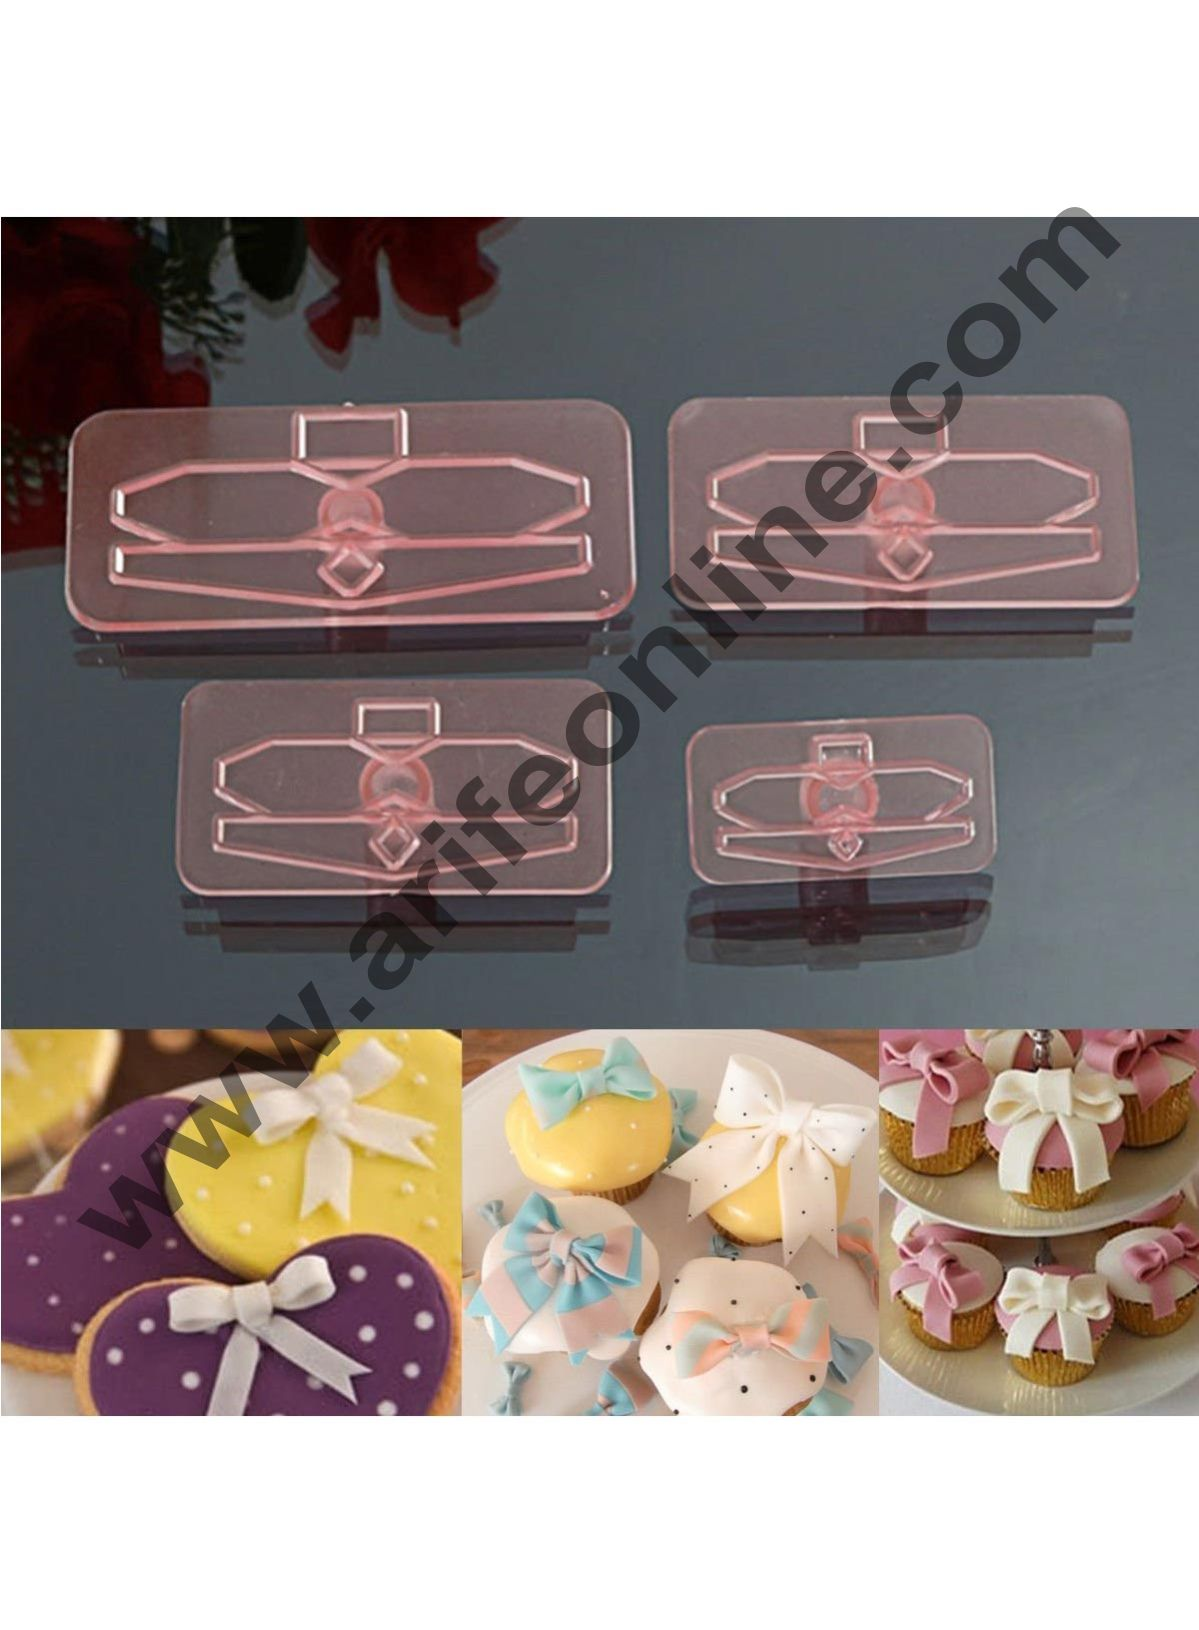 Cake Decor 4Pc Plastic Bow Cake Cutter Decor Mold Icing Cookie Biscuit Fondant Embosser